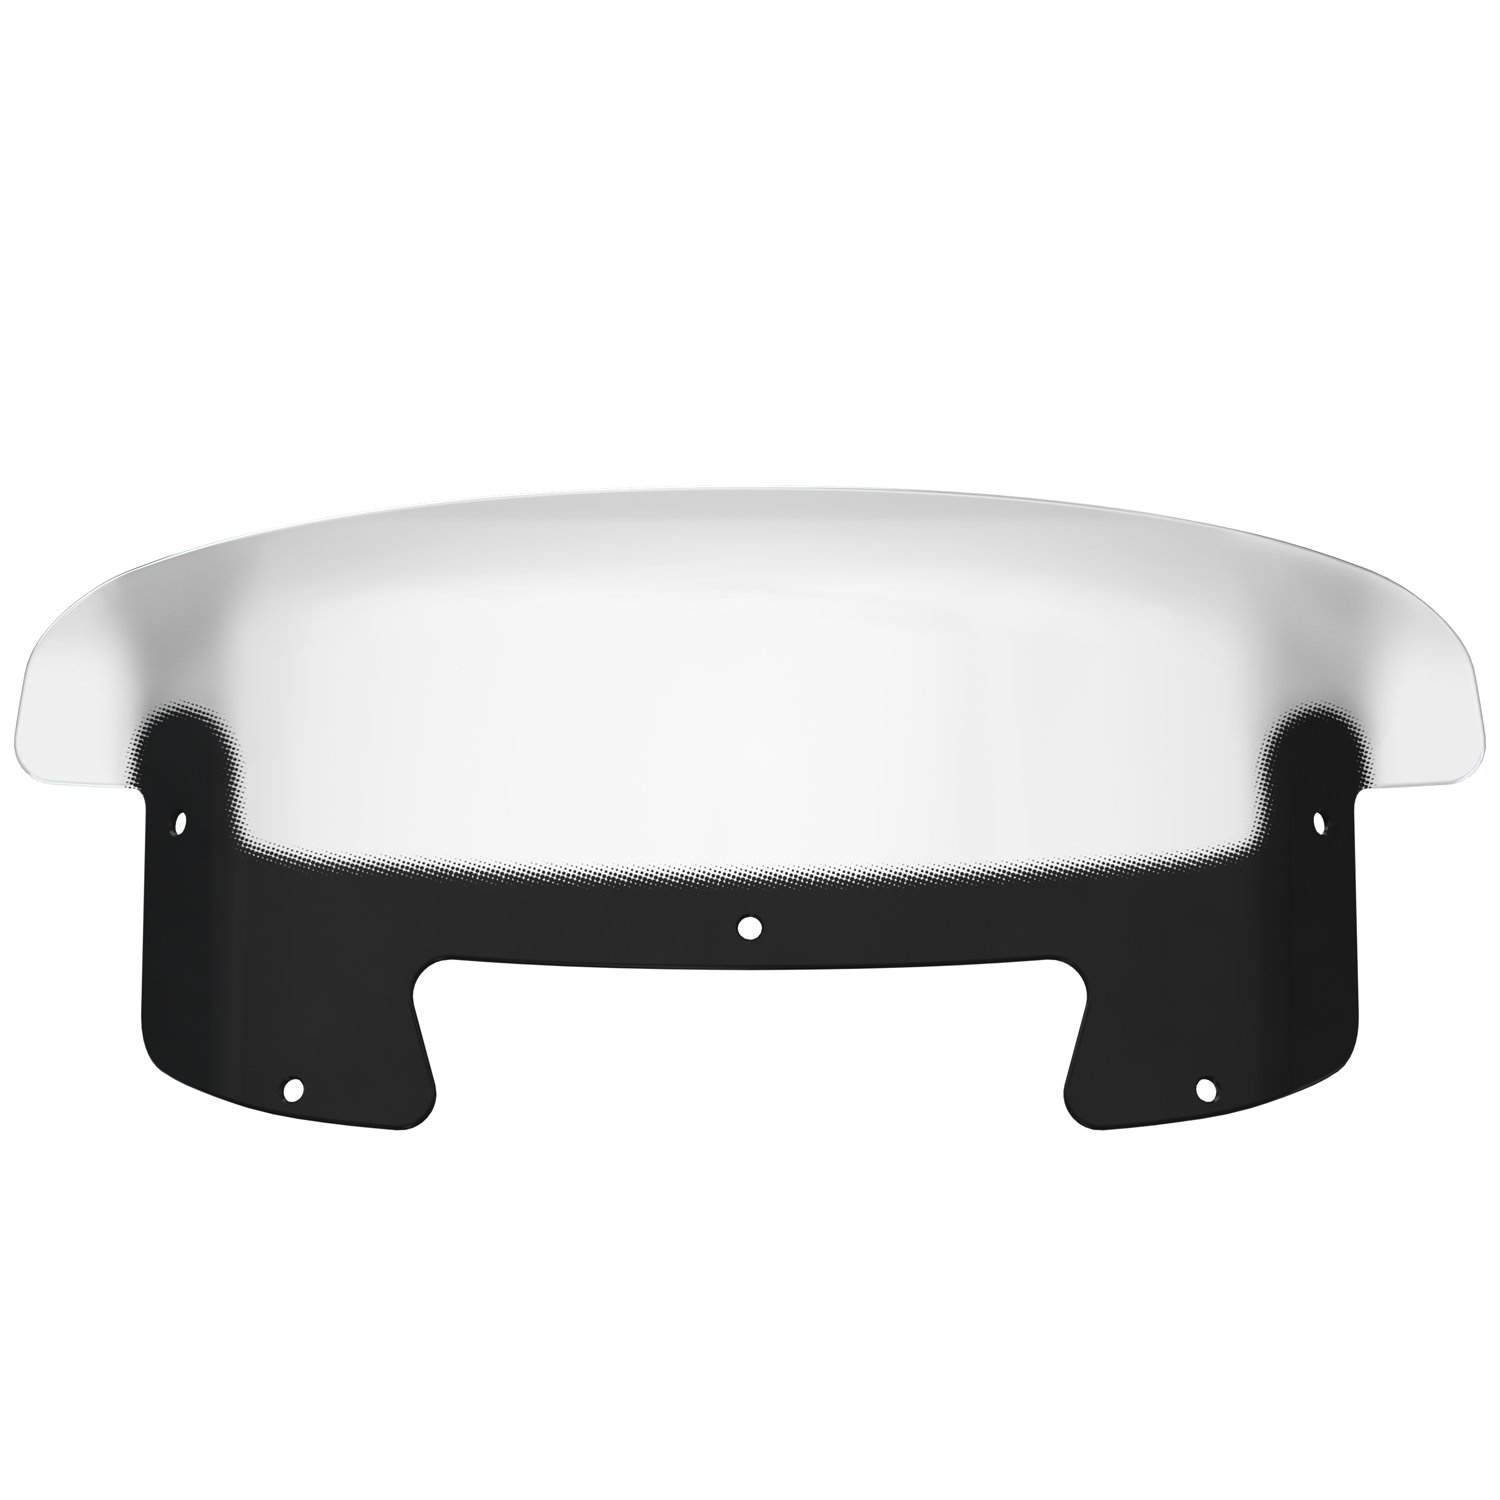 11 in. Curved Windshield – Tinted